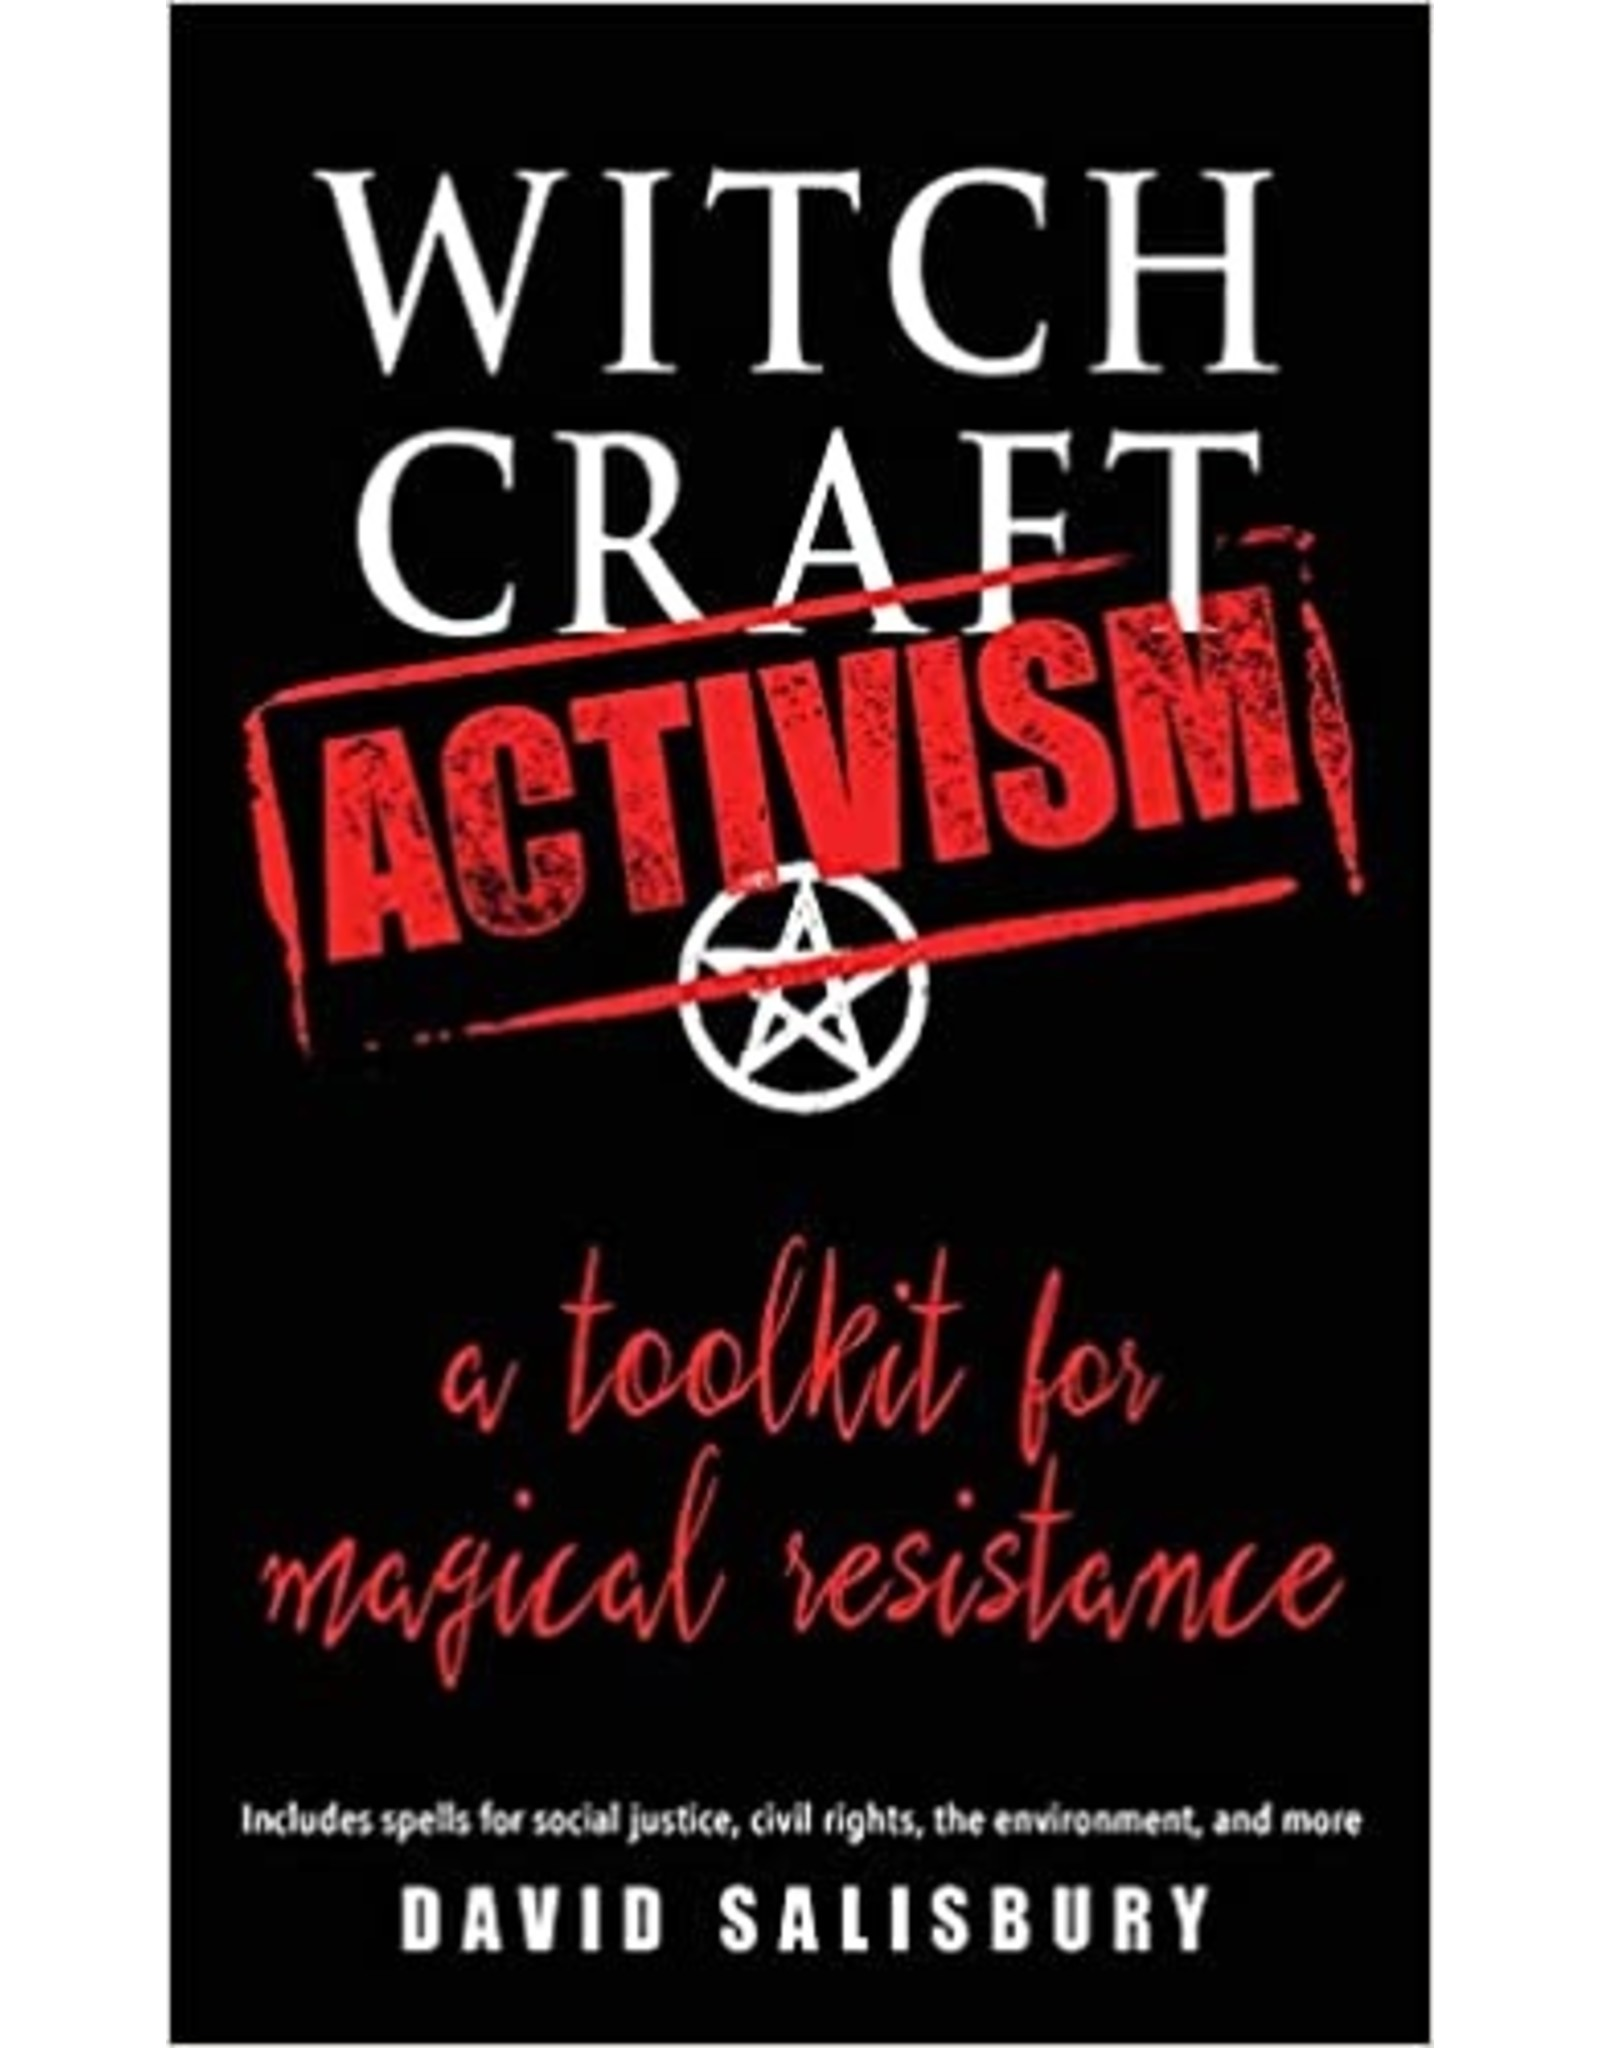 Witchcraft Activism: a toolkit for magical resistance